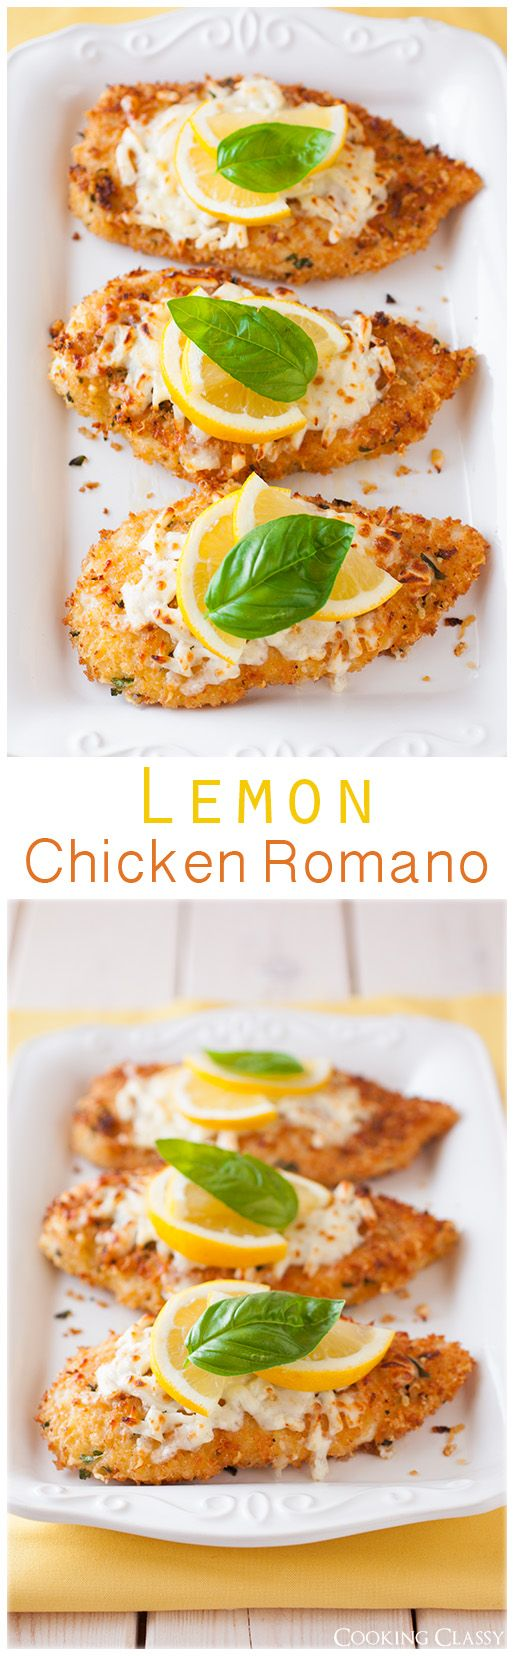 Lemon Chicken Romano  by cookingclassy #Chicken #Lemon #Cheese